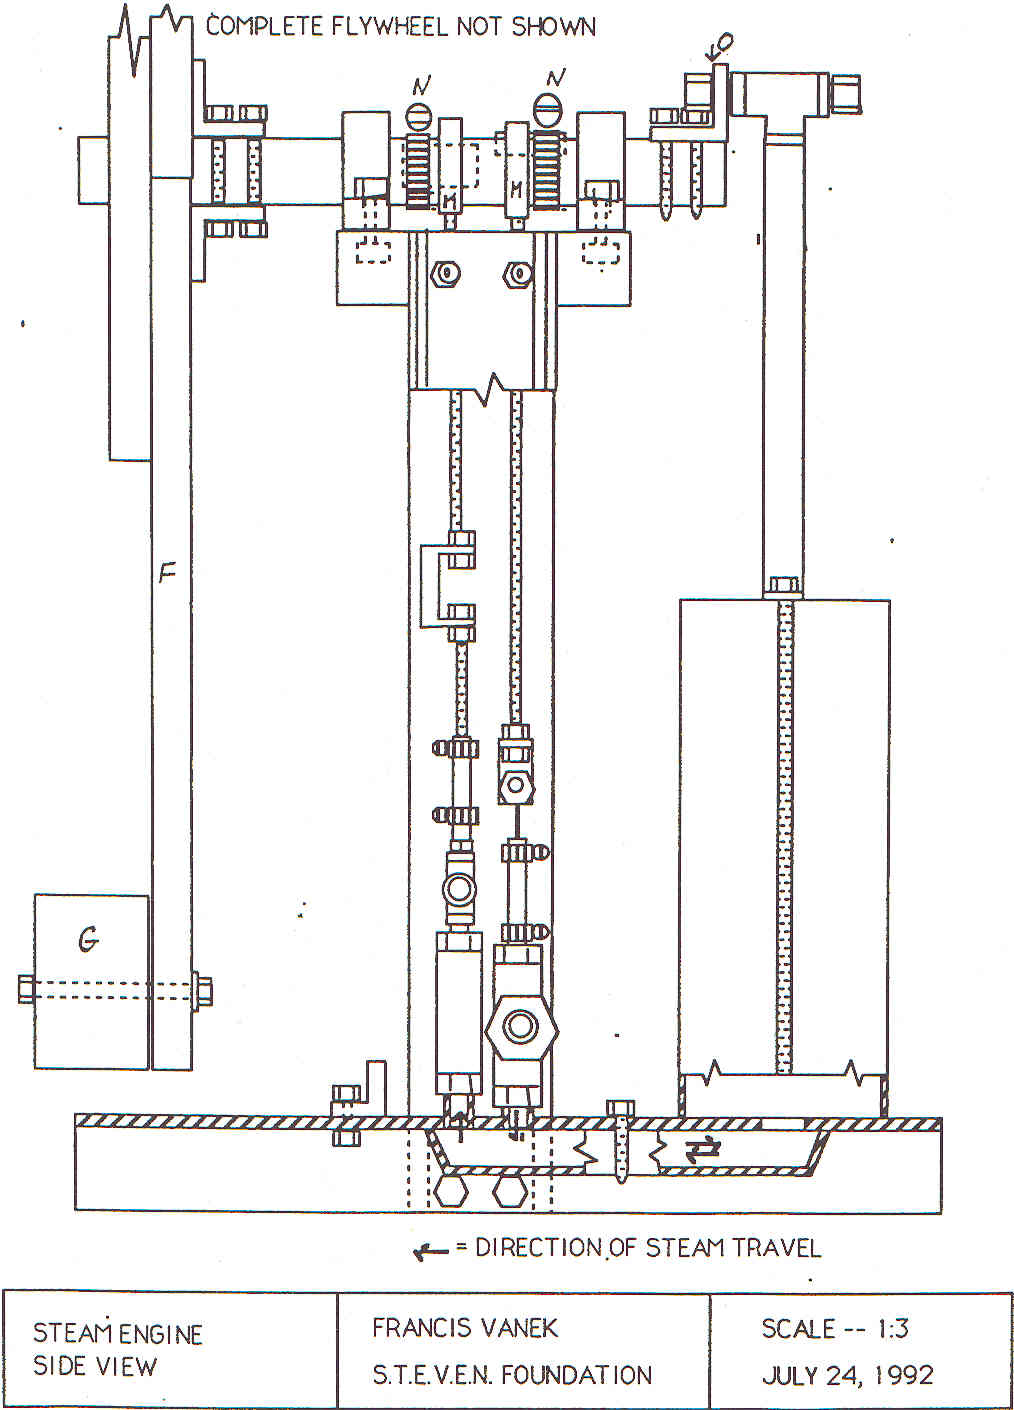 Steven Homepage Steam Engine Piston Diagram The Can Be Divided Into Two Parts A Cylinder Crank Flywheel Assembly And Frame Is Fastened To Using Gasket